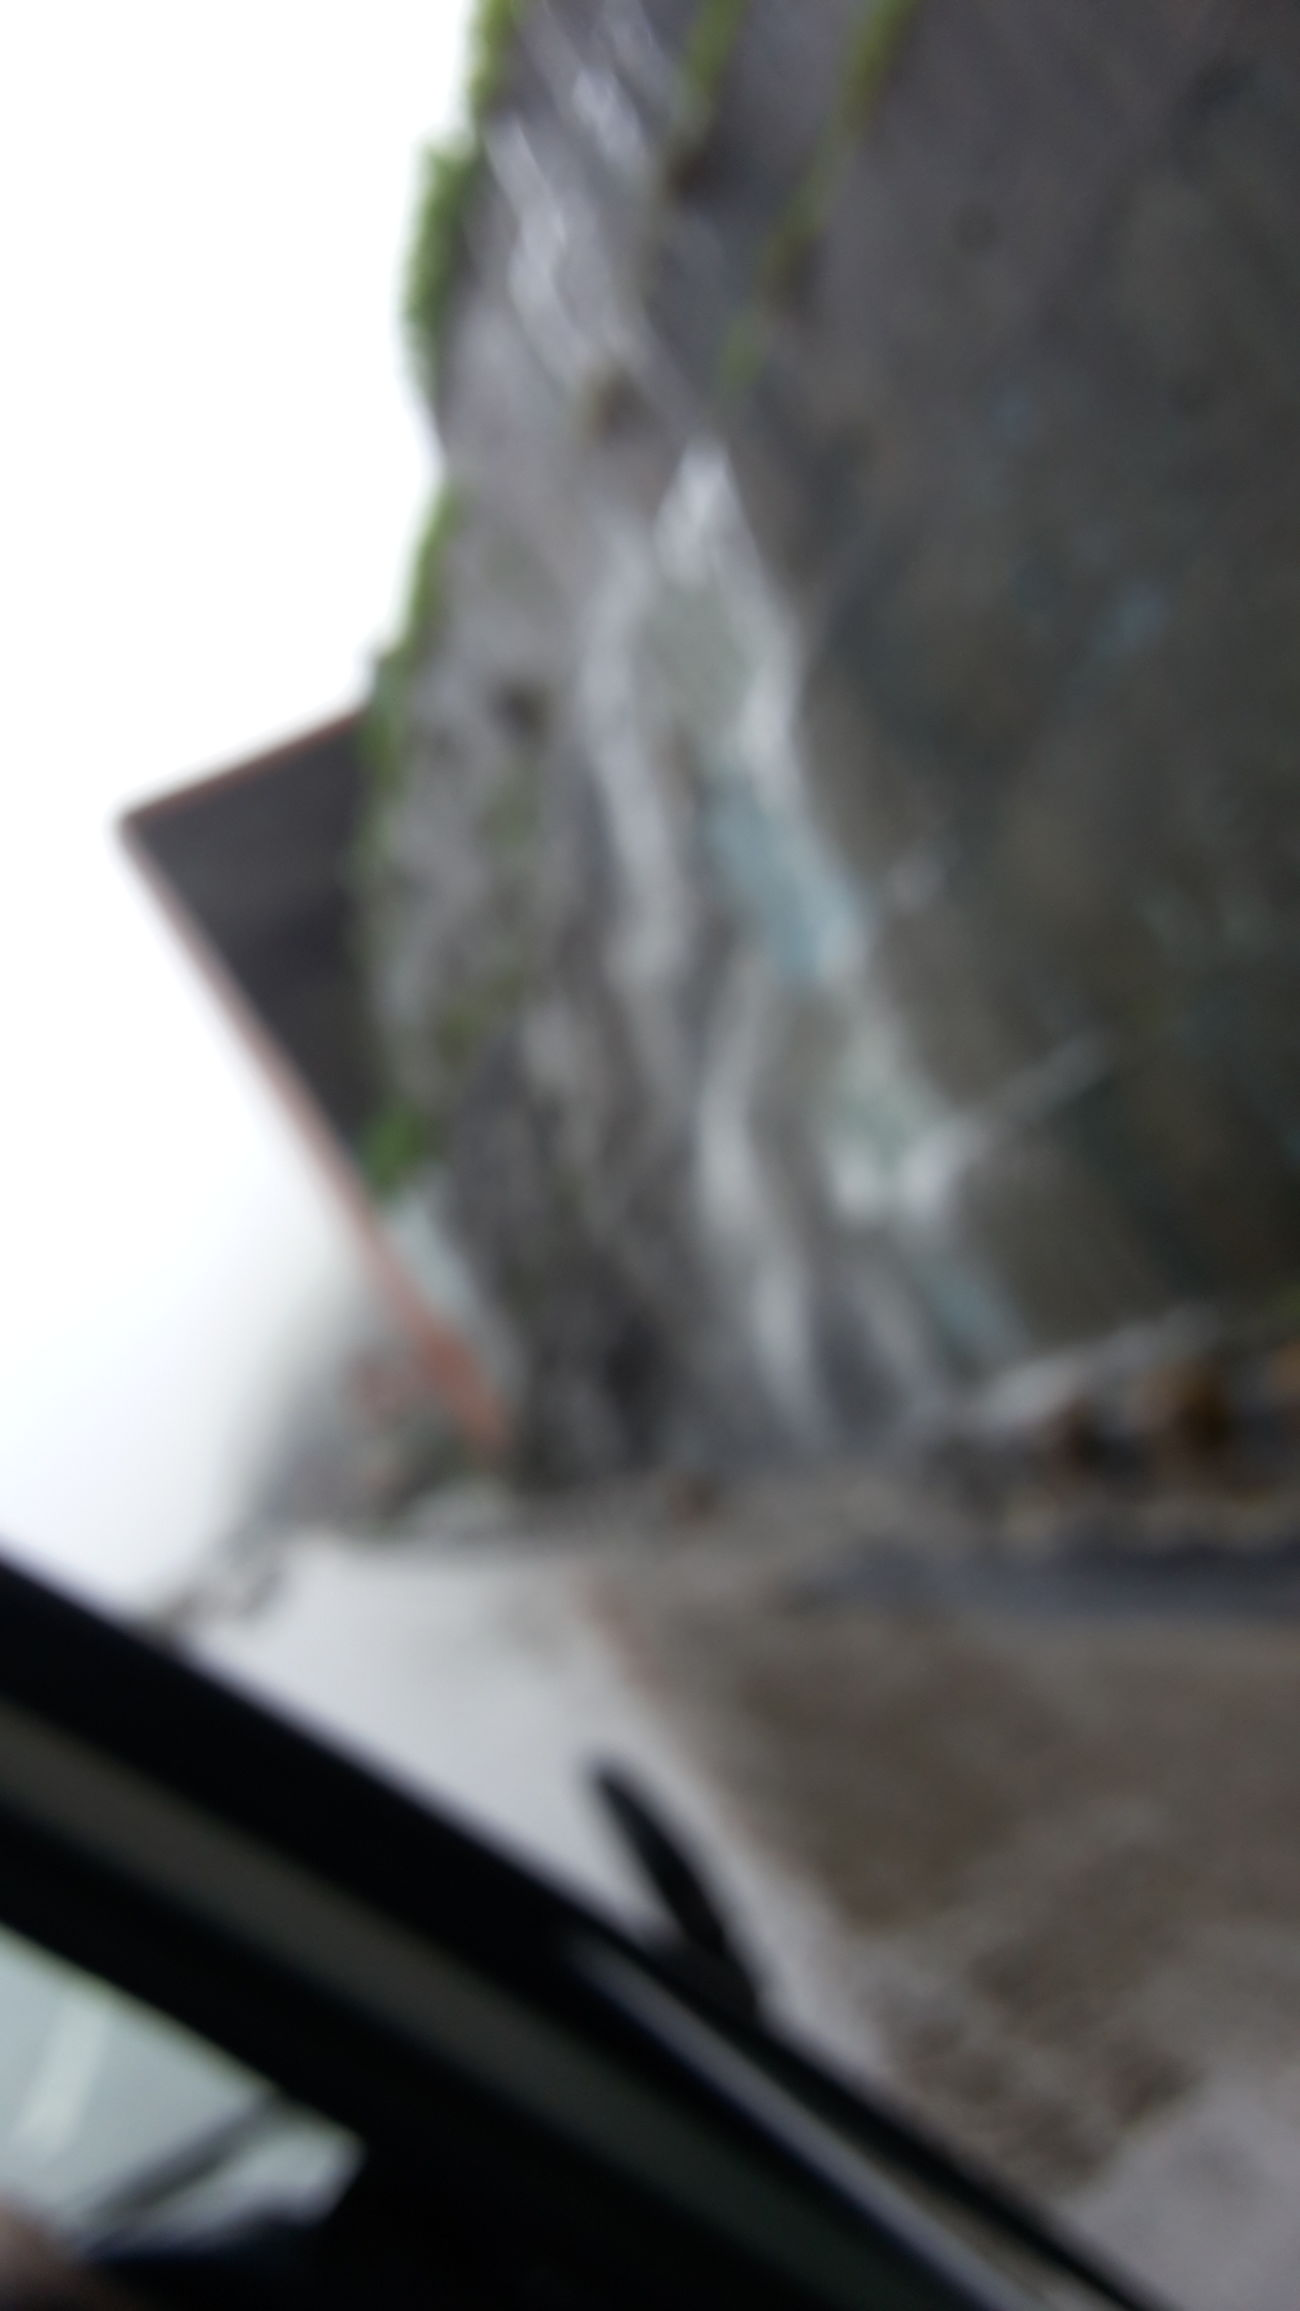 Car Transportation Windshield Car Interior Mode Of Transport Land Vehicle Day No People Close-up Rainy Days☔ Pune City Construction Site Landslidearea No Filters Needed Street Photography EyeEmGalley Water Travel Photography Traveladdict Shining Water Hazy Mountains